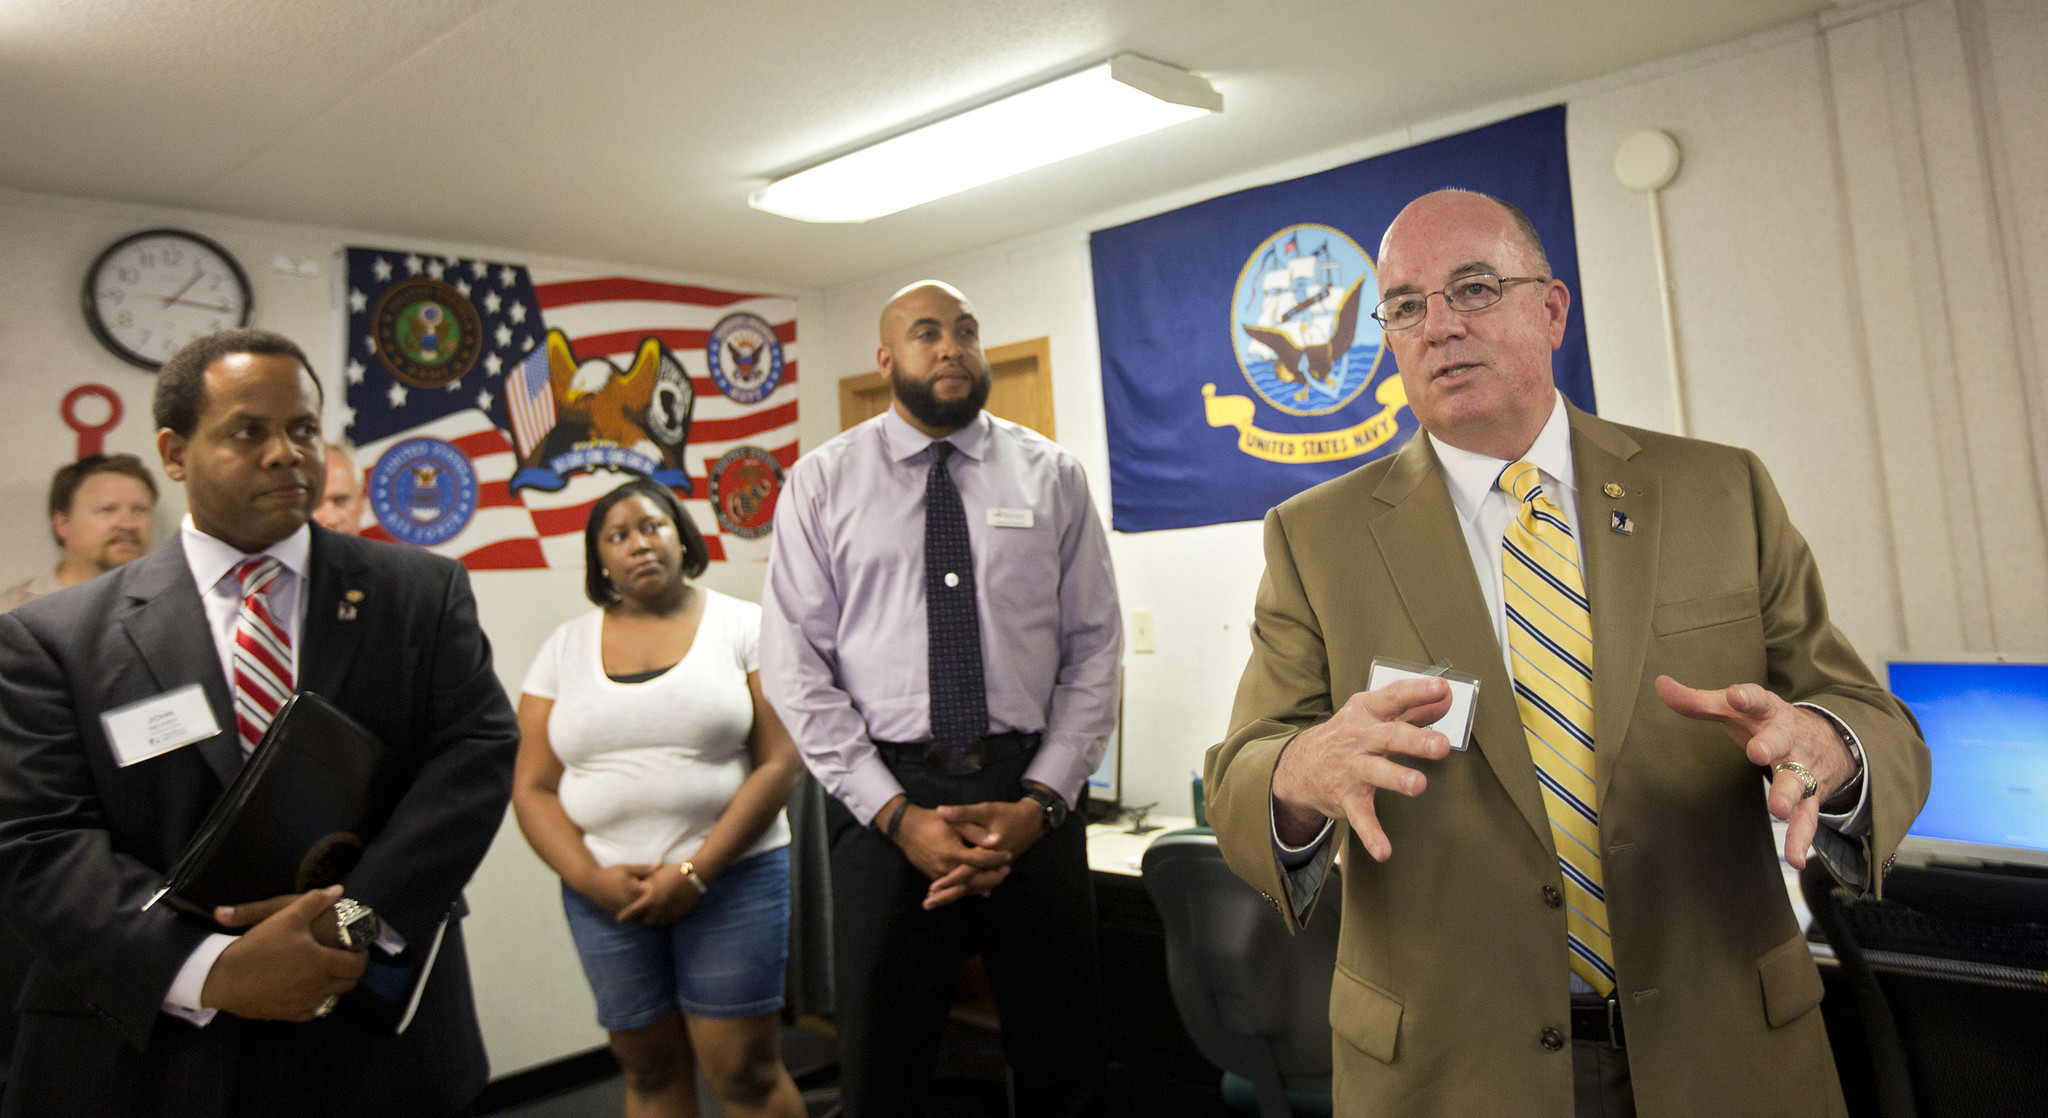 John C. Harvey, Jr., Virginia Secretary of Veterans and Defense Affairs, right, speaks with students, faculty and community representatives at the new Veteran Services Center at Thomas Nelson Community College on Tuesday.